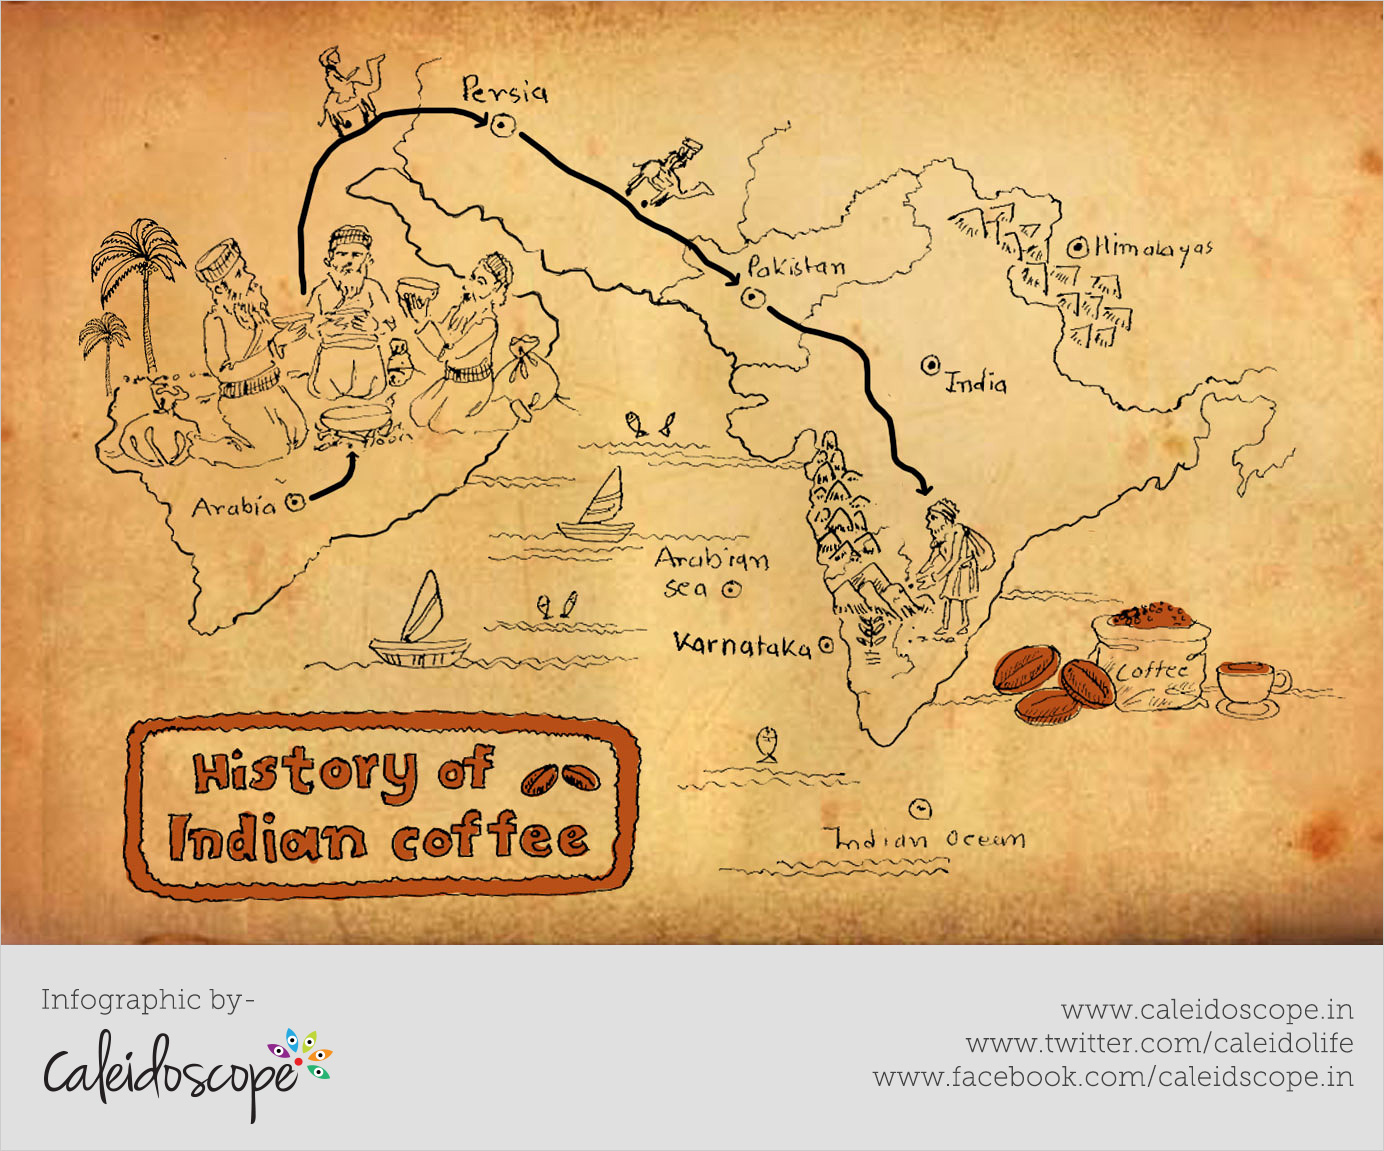 History of Indian Coffee